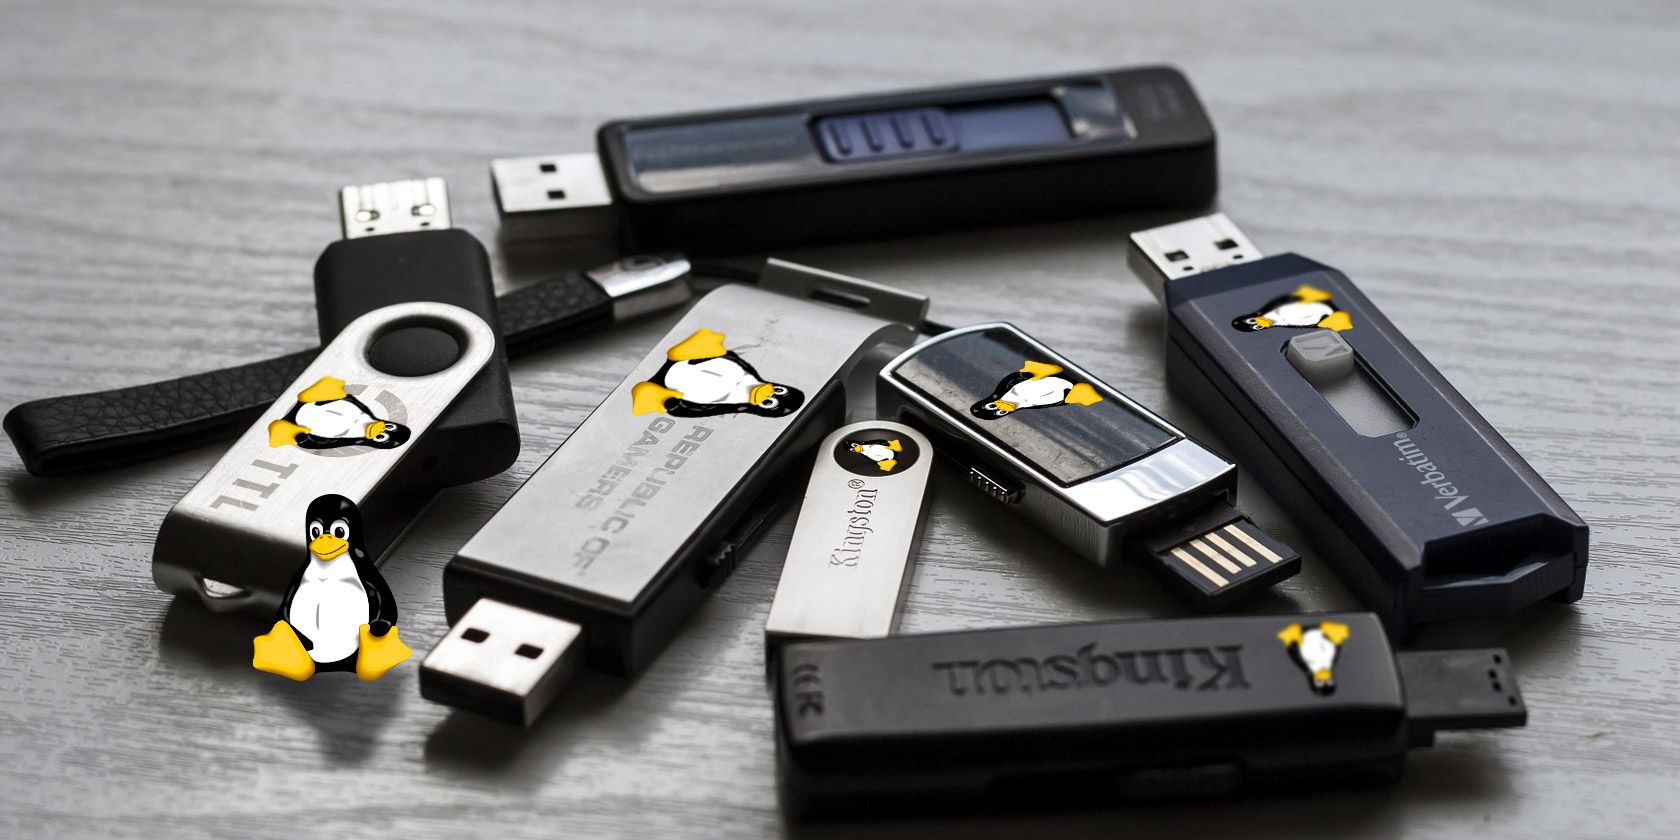 The 5 Best Linux Distros To Install On A Usb Stick